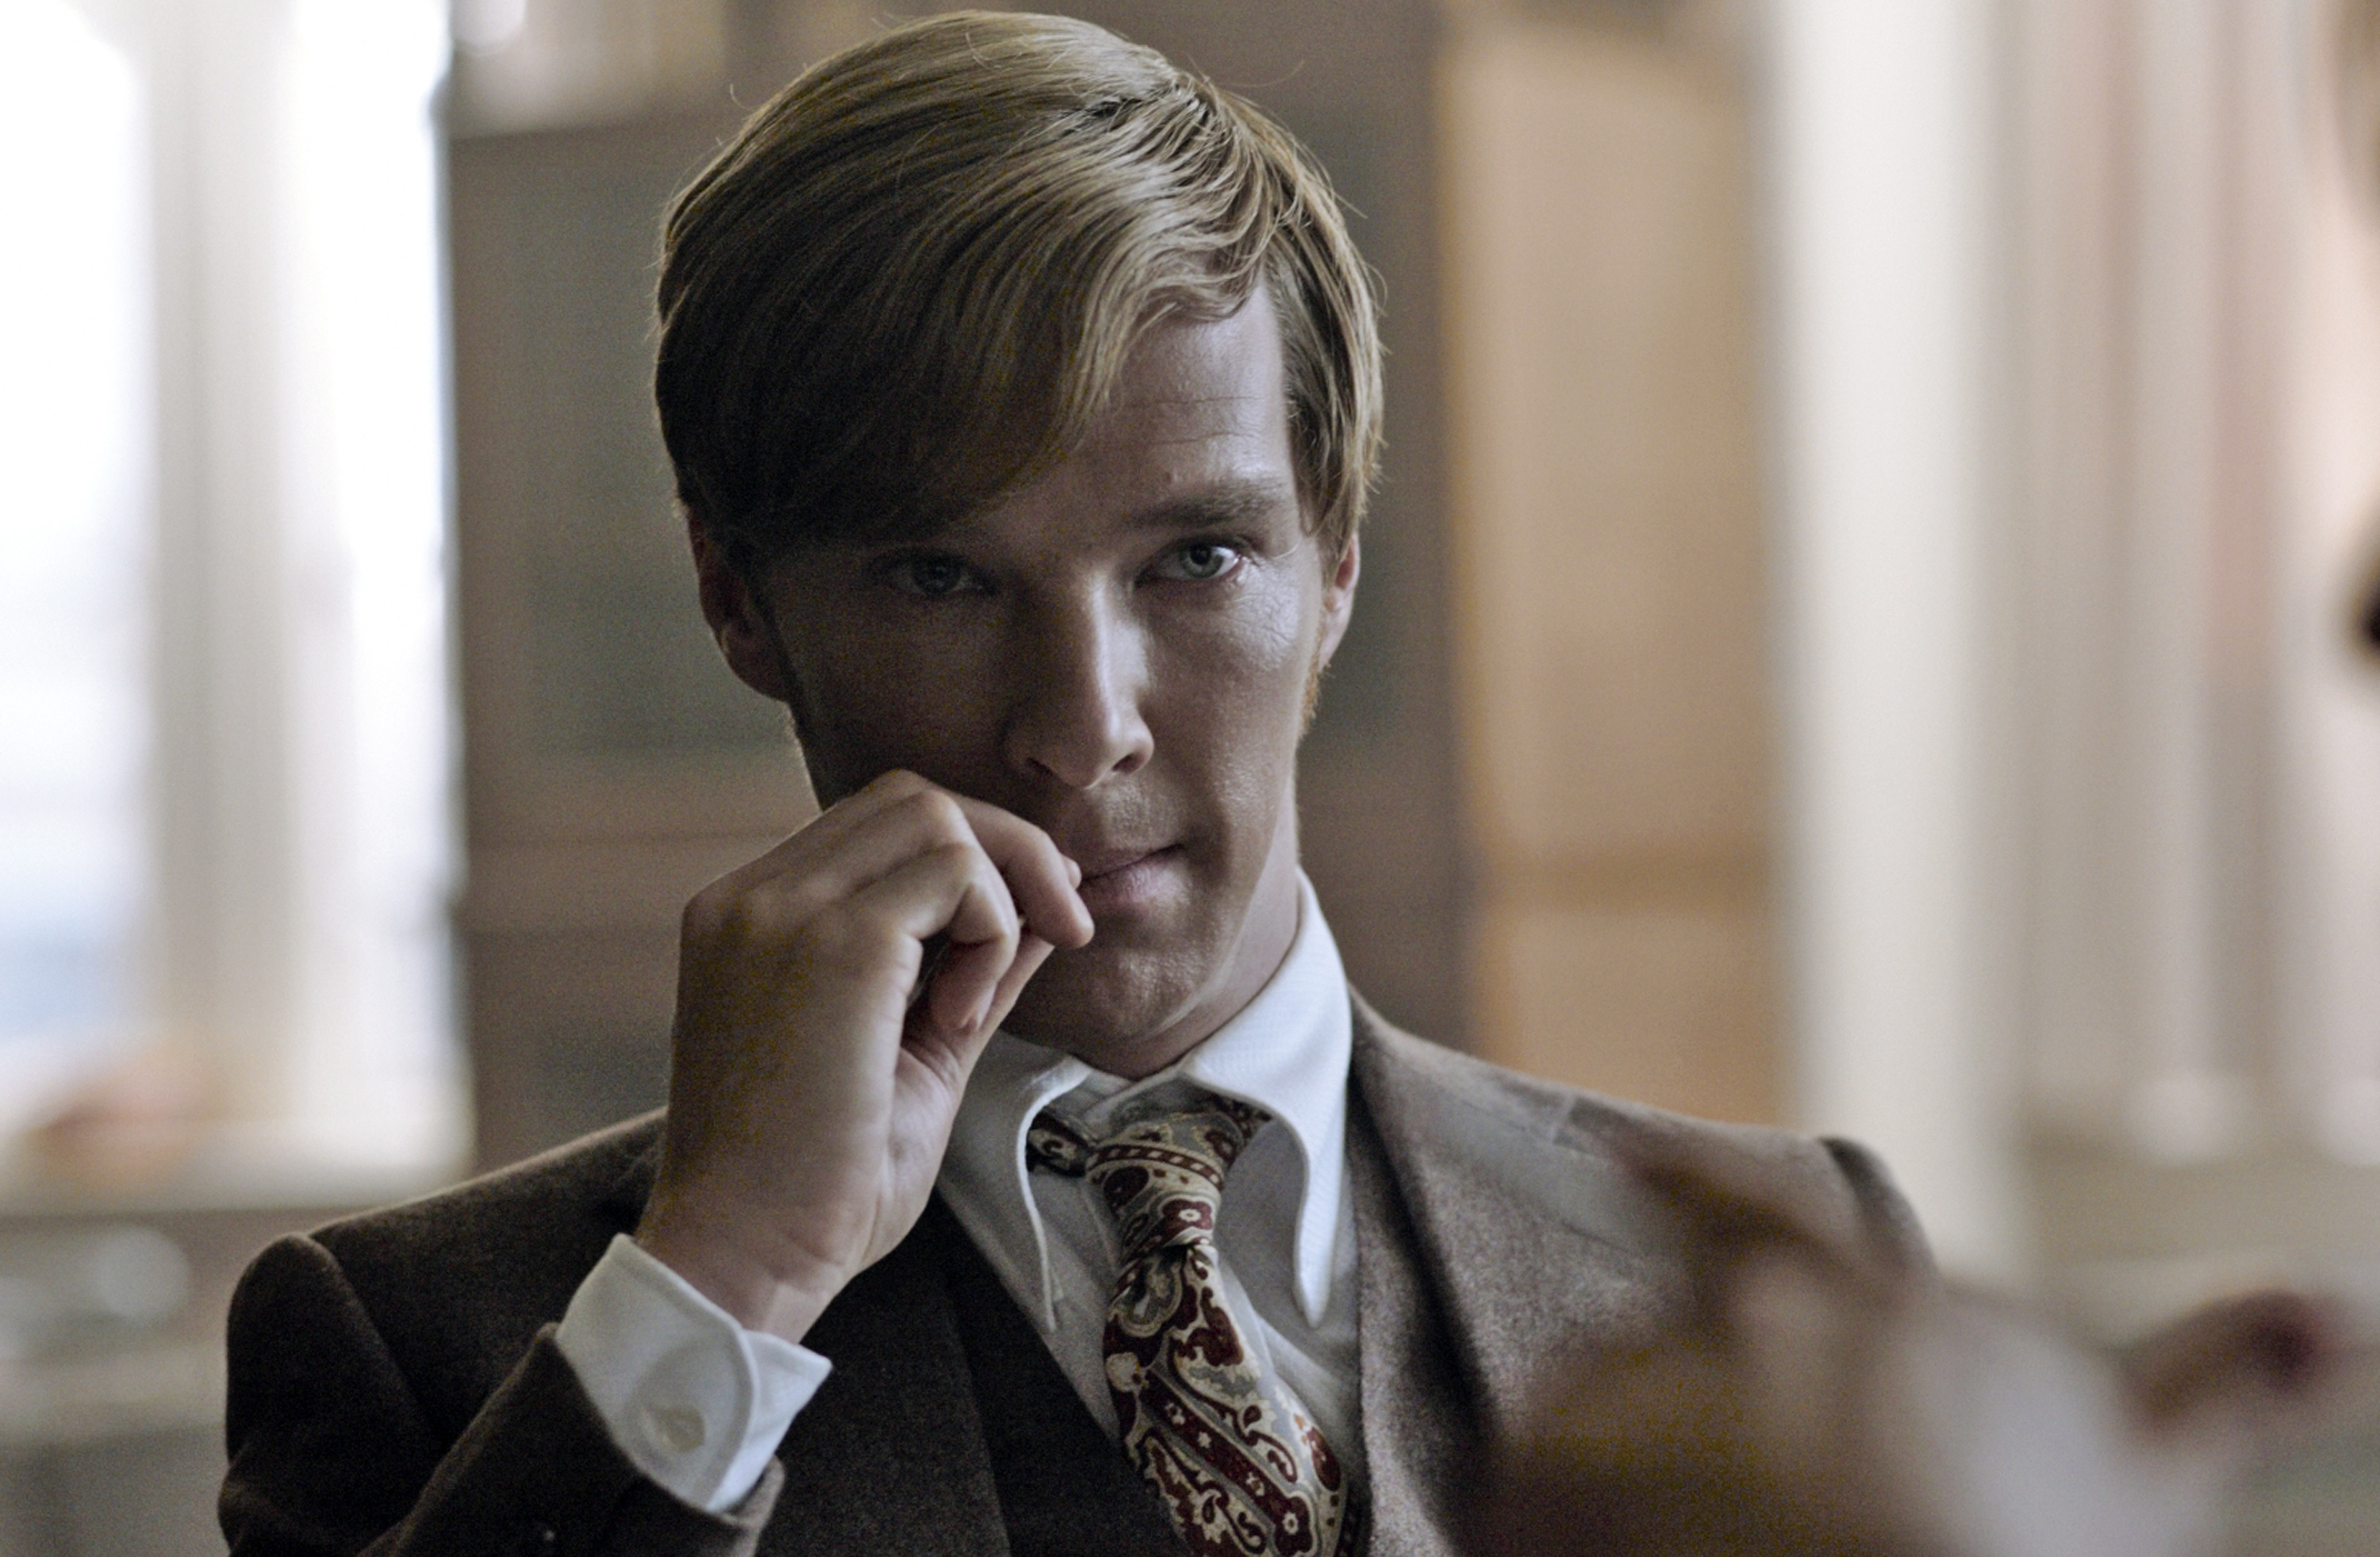 Benedict Cumberbatch Actor The Imitation Game Benedict Timothy Carlton Cumberbatch was born and raised in London England His parents Wanda Ventham and Timothy